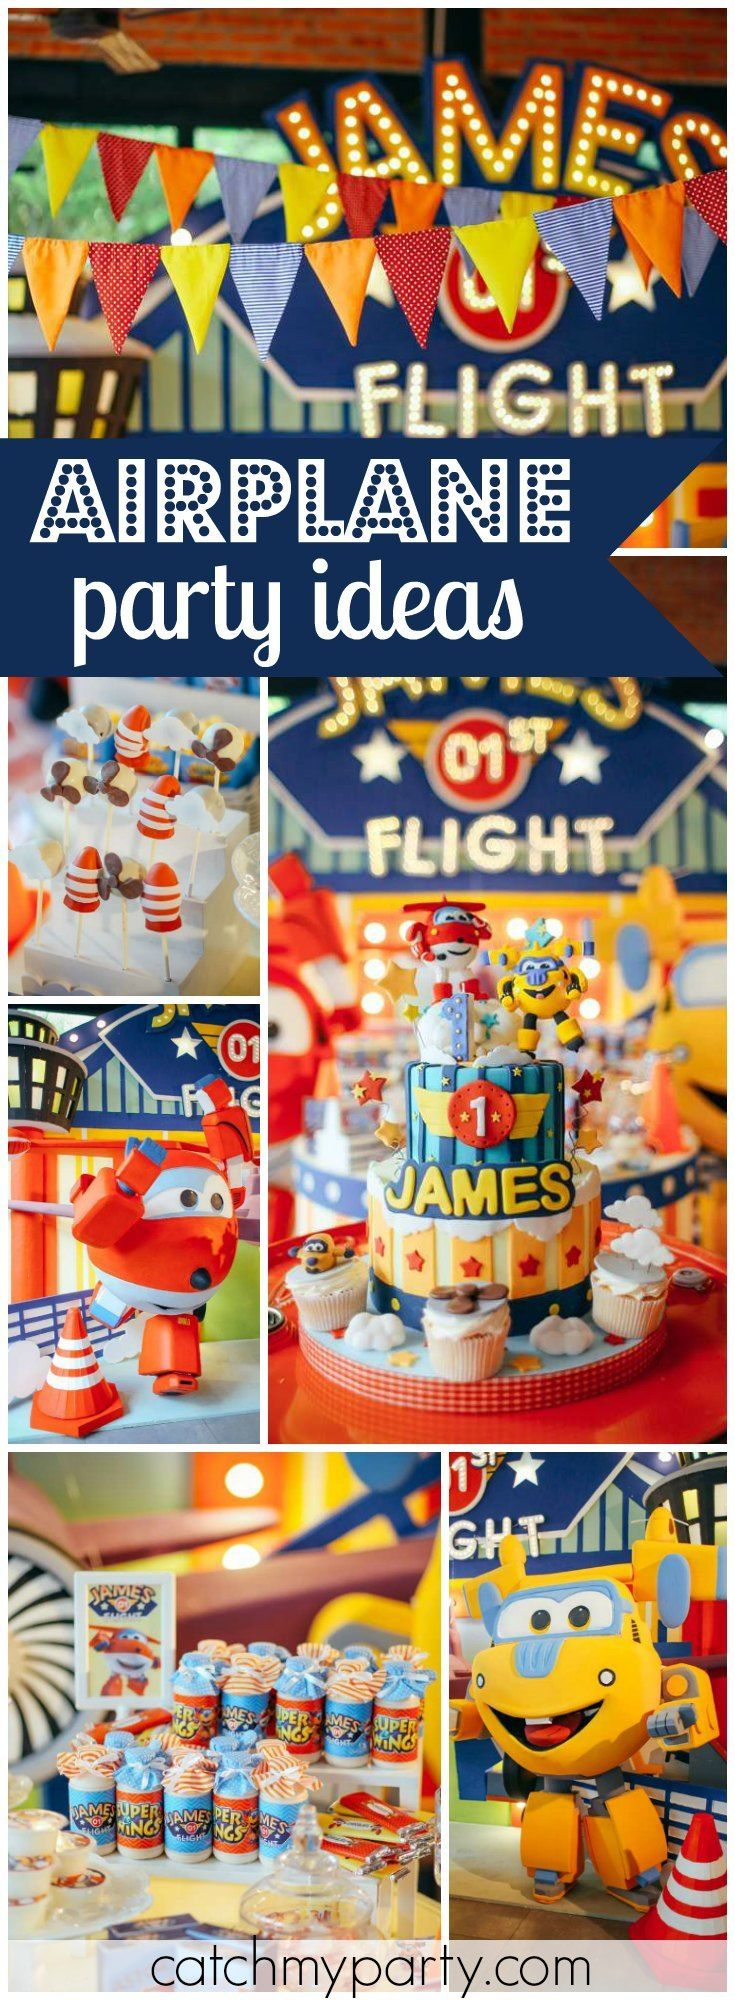 You have to see this super fun airplane boy birthday party! See more party ideas at Catchmyparty.com!